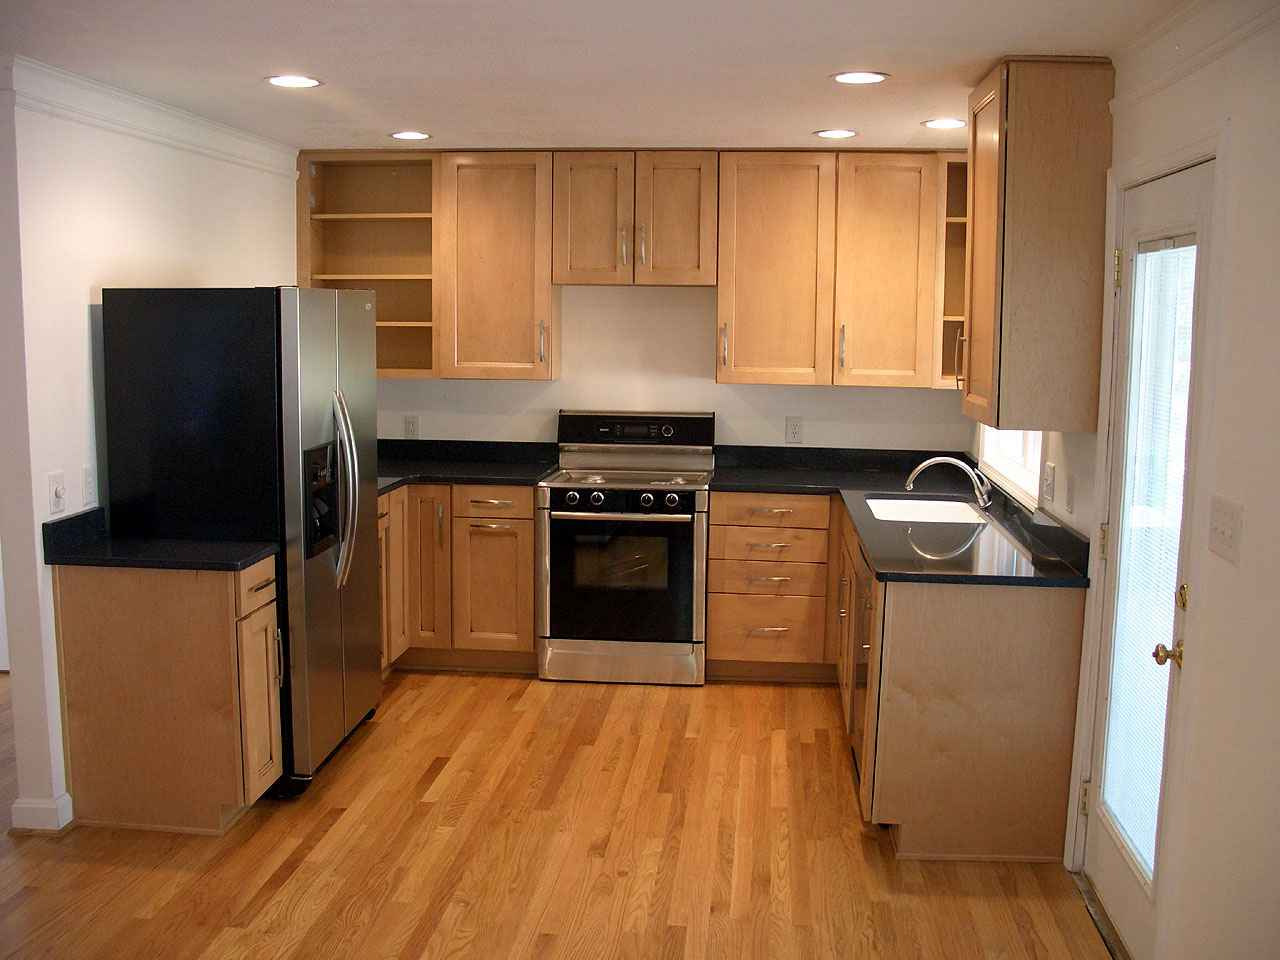 Cheap cabinets for kitchens shopping tips for Cheaper kitchen cabinets